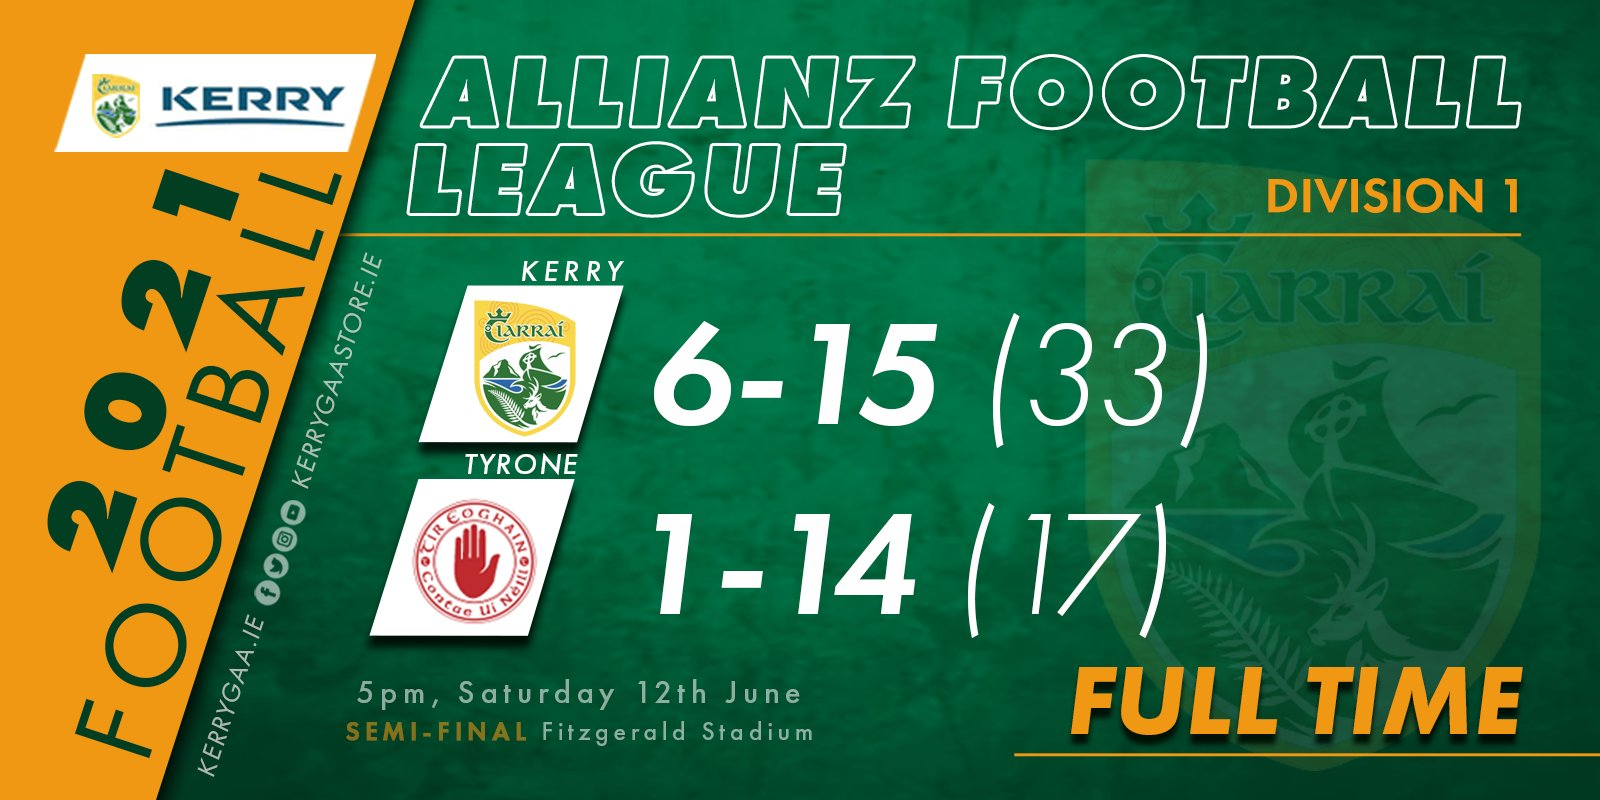 Victory for Kerry in the AFL, Division 1 Semi-Final